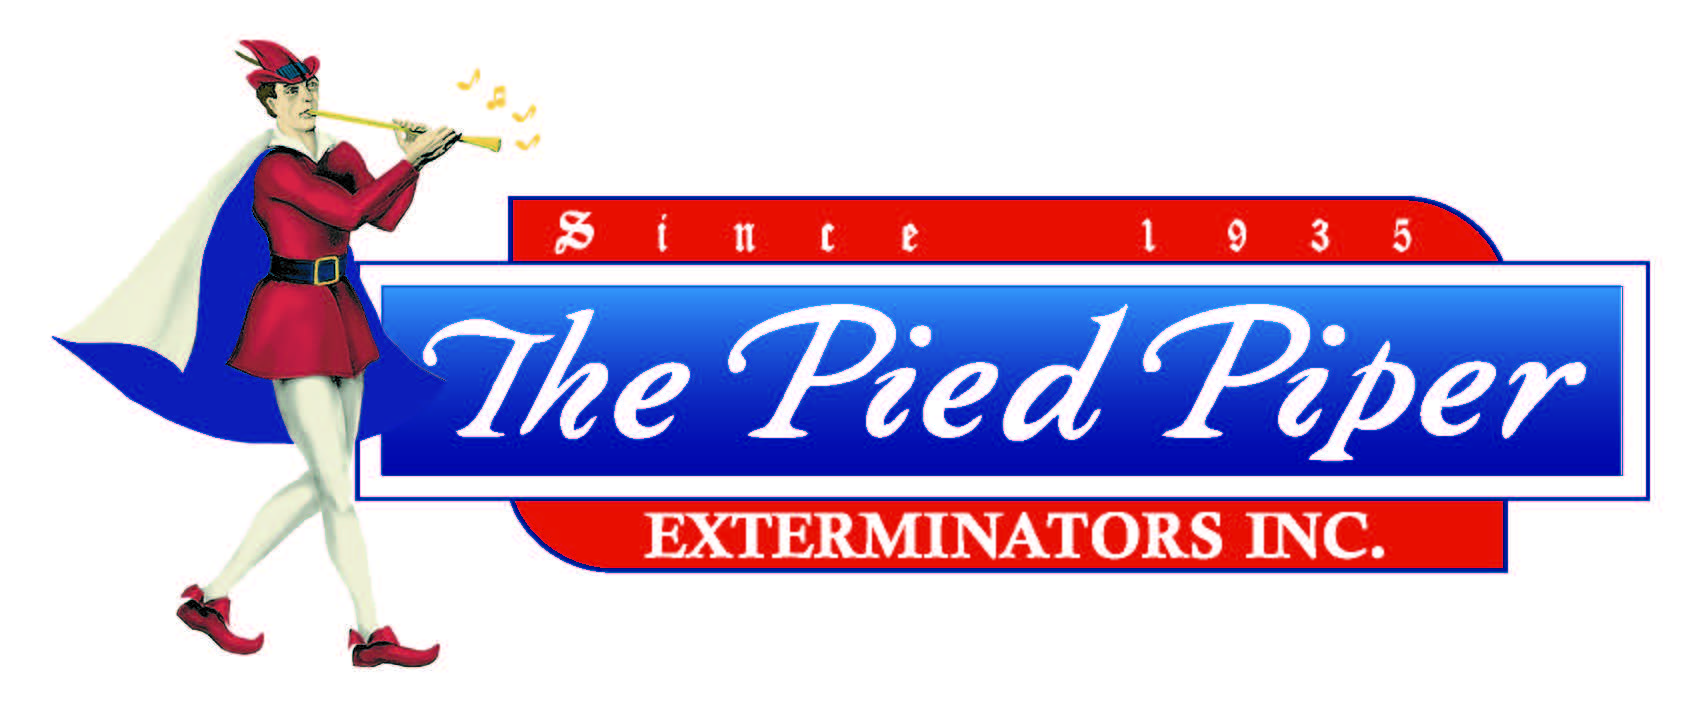 Thanks To The Pied Piper Exterminators!